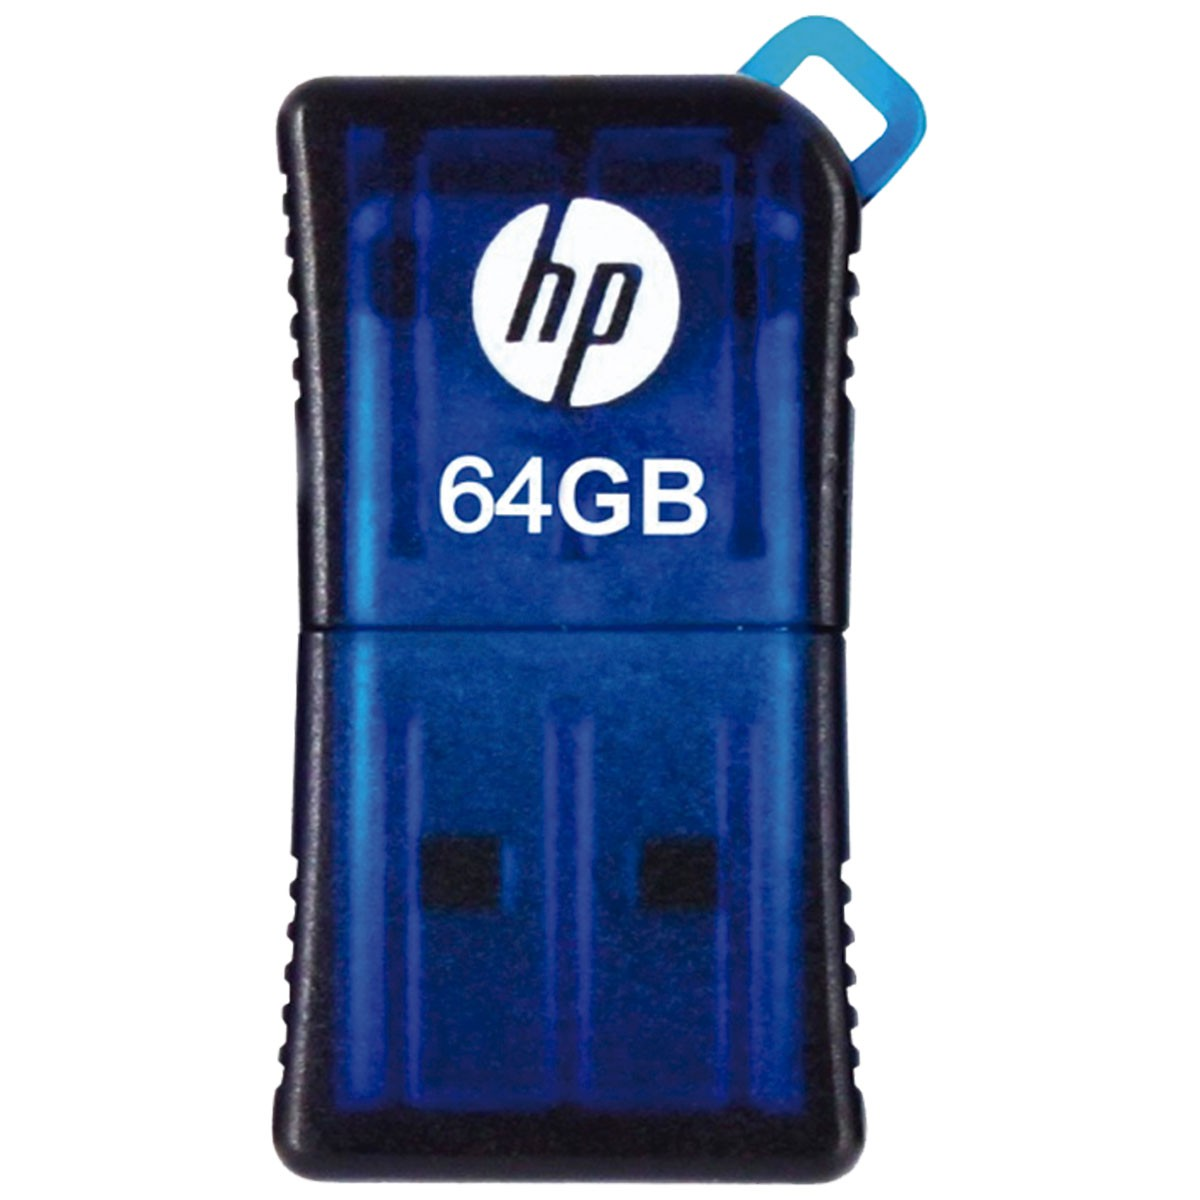 Pen Drive Mini HP USB 2.0 V165W 64GB  HPFD165W2-64